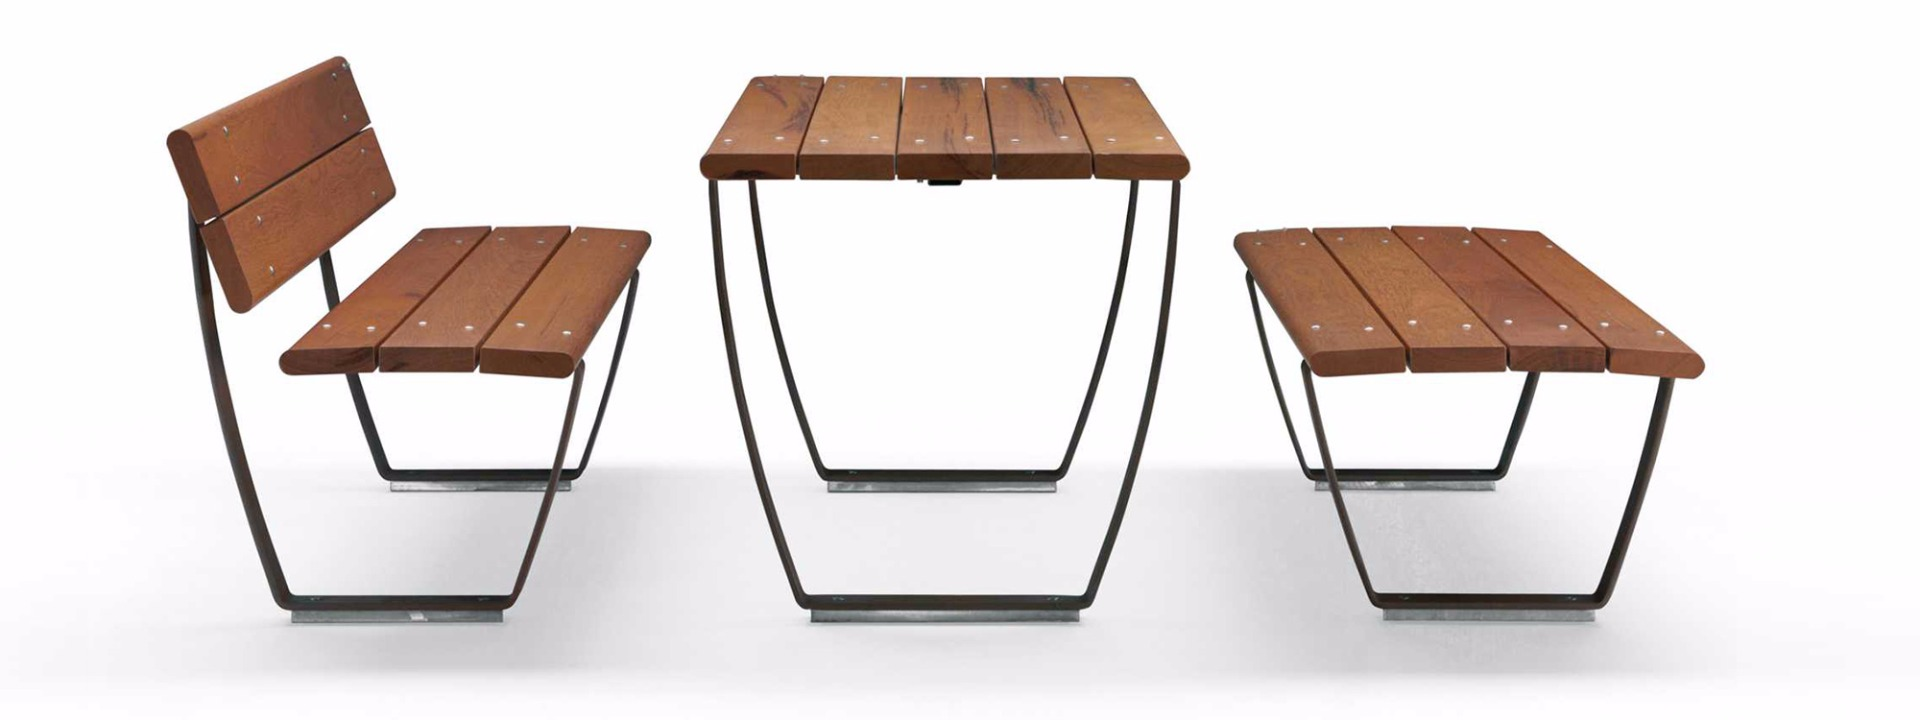 Nuvola Table